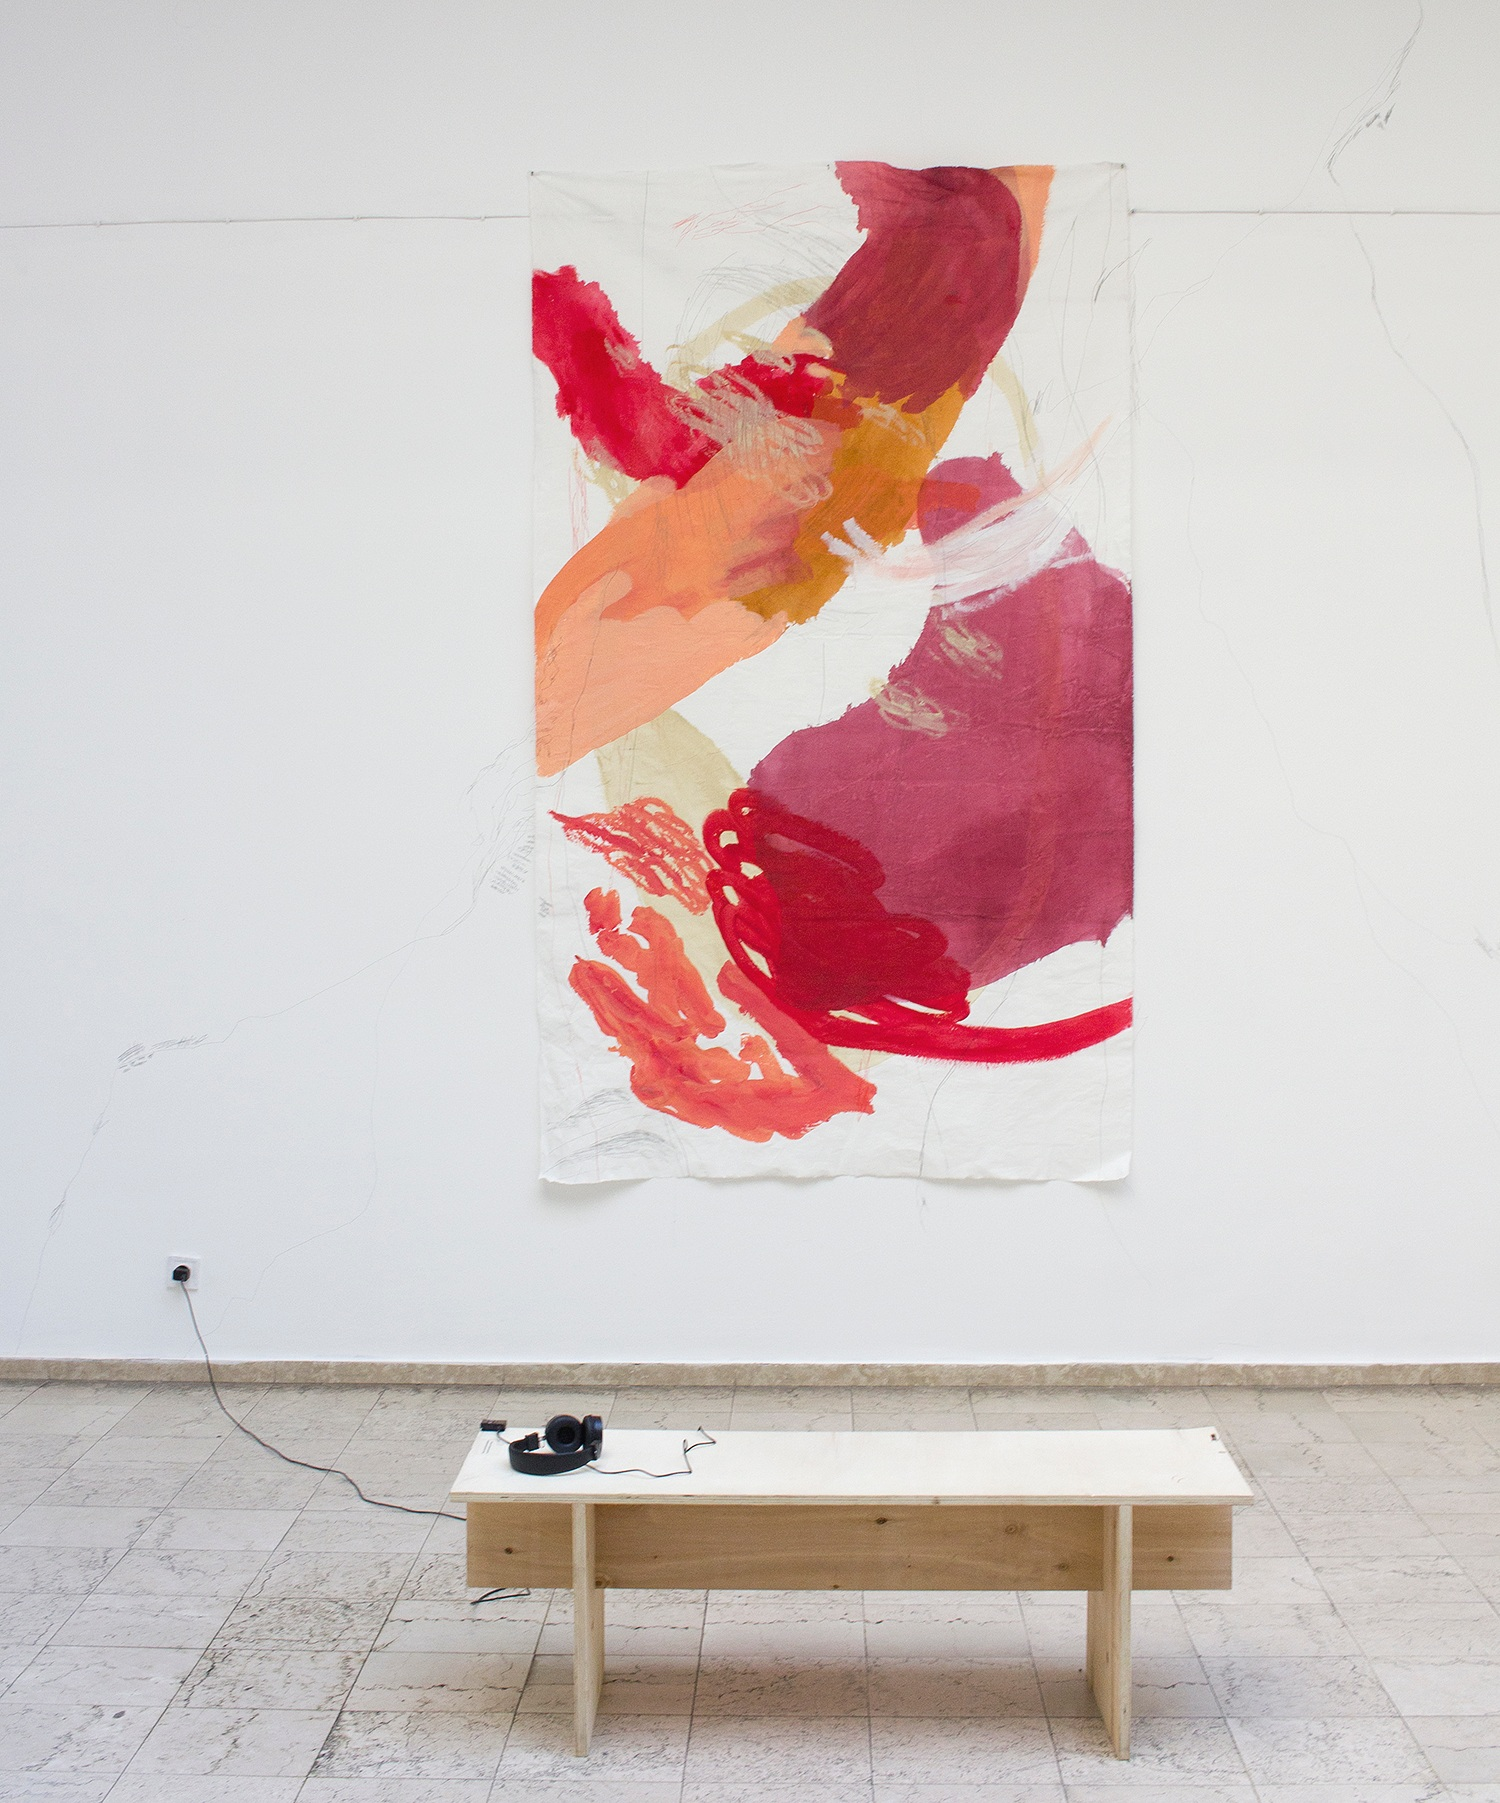 acrylic, pencil, industrial paints on textile, 280x150cm; audio 12:37 min